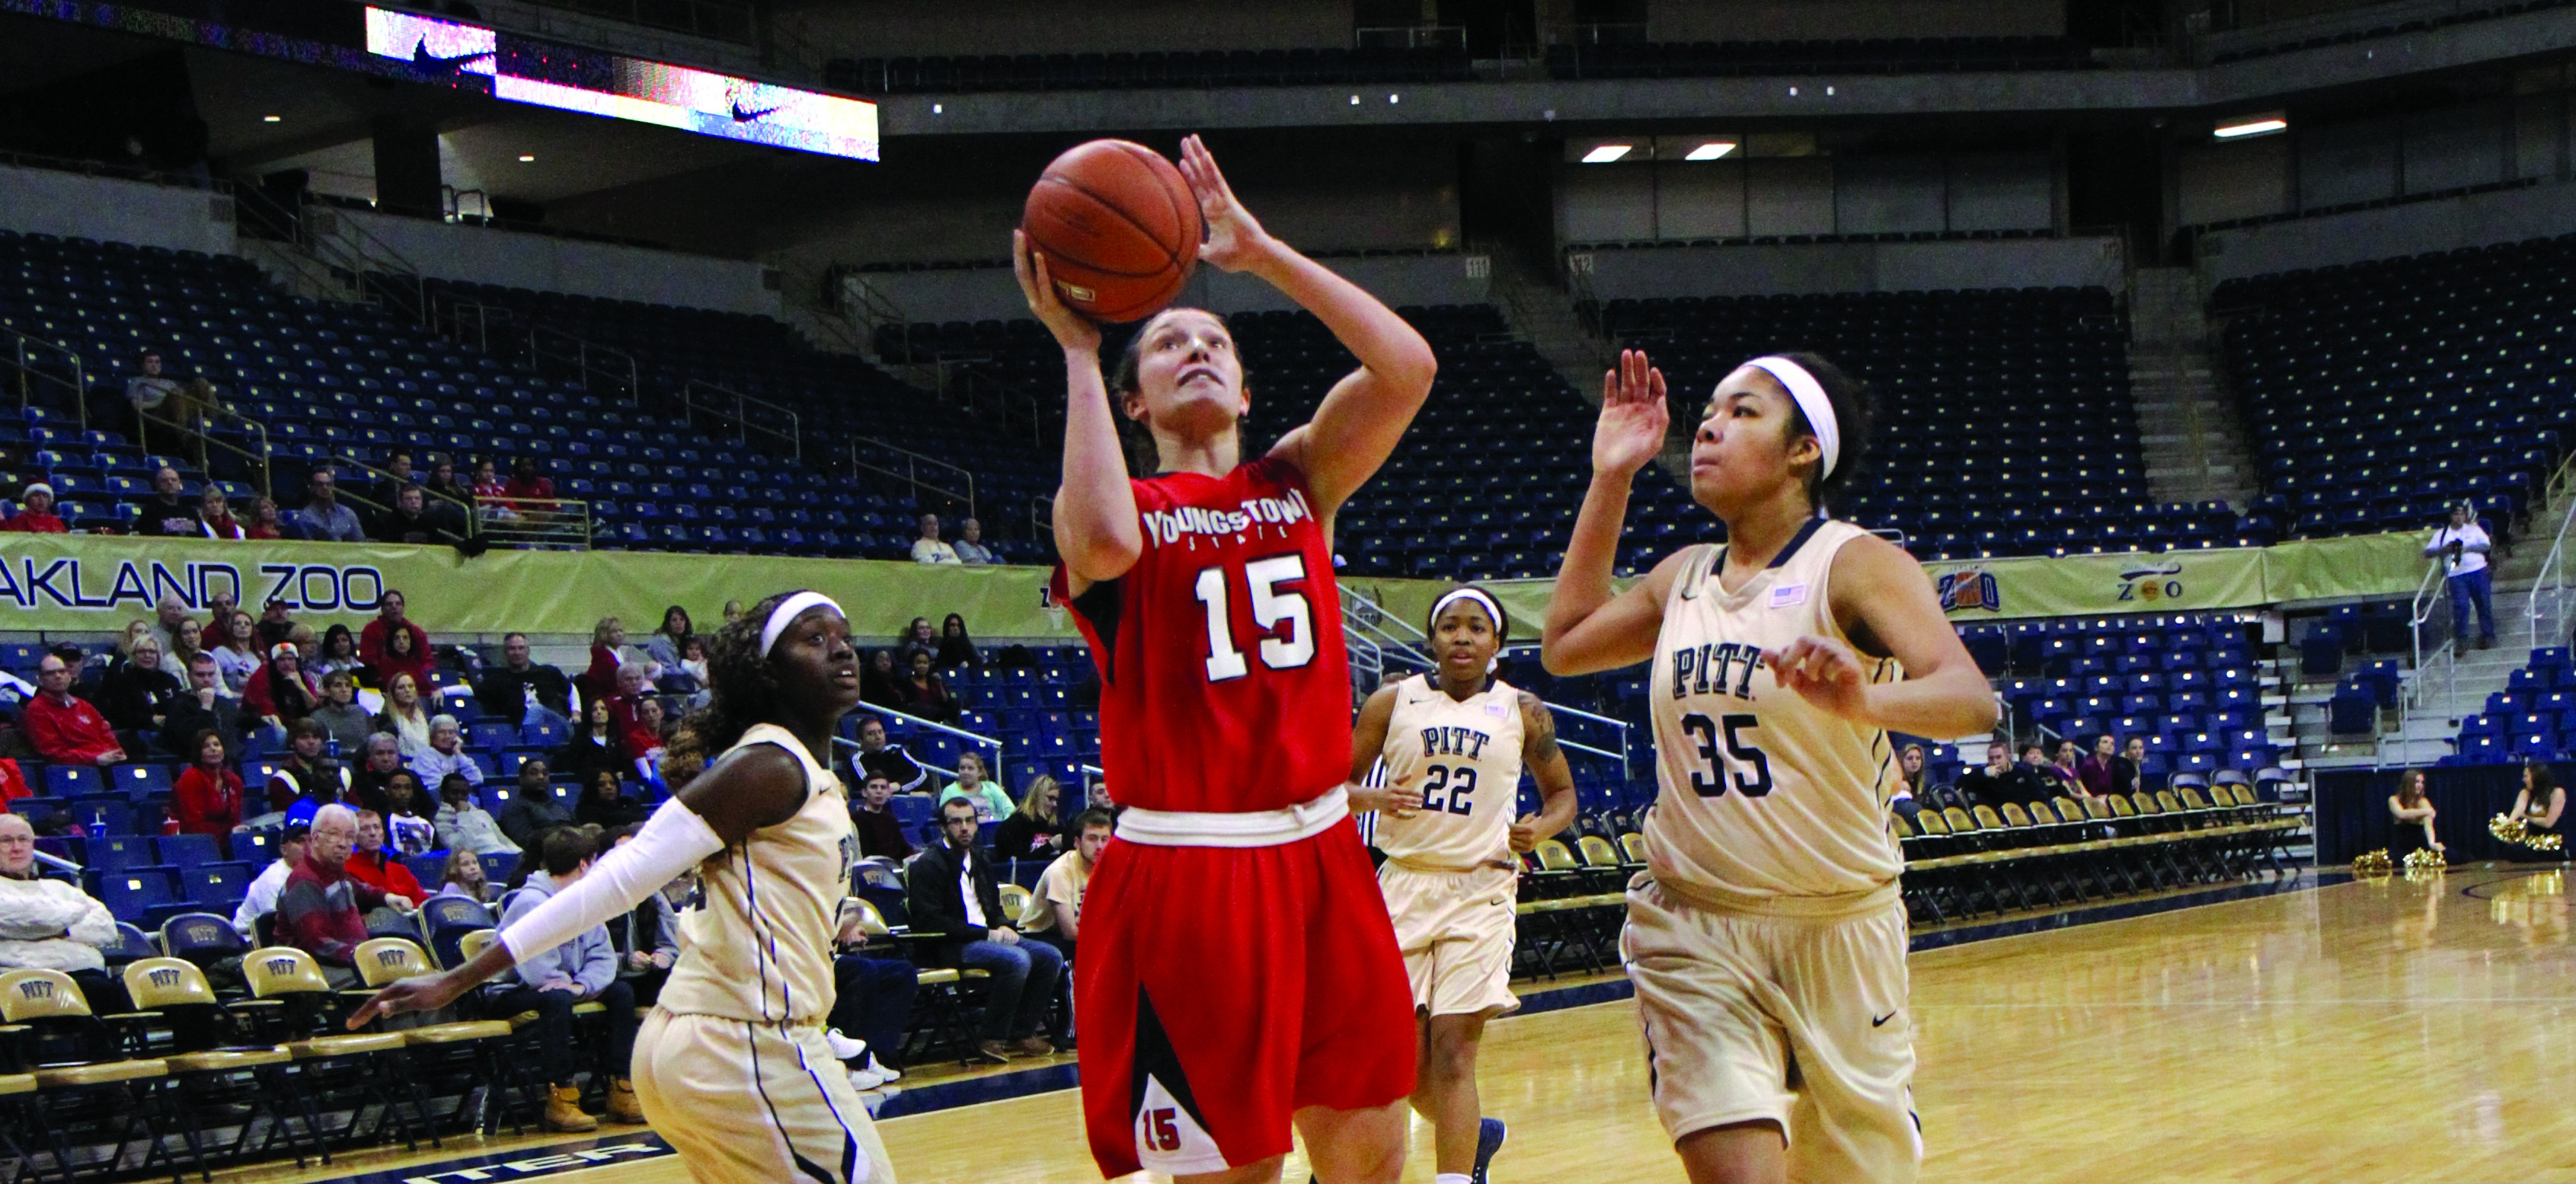 Senior forward Heidi Schlegel scored over 30 points in back-to-back games against Valparaiso and Milwaukee last week. The last Penguin to score 30 points in back-to-back games was Brandi Brown during the 2012-2013 season. Photo courtesy of YSU Sports Information.